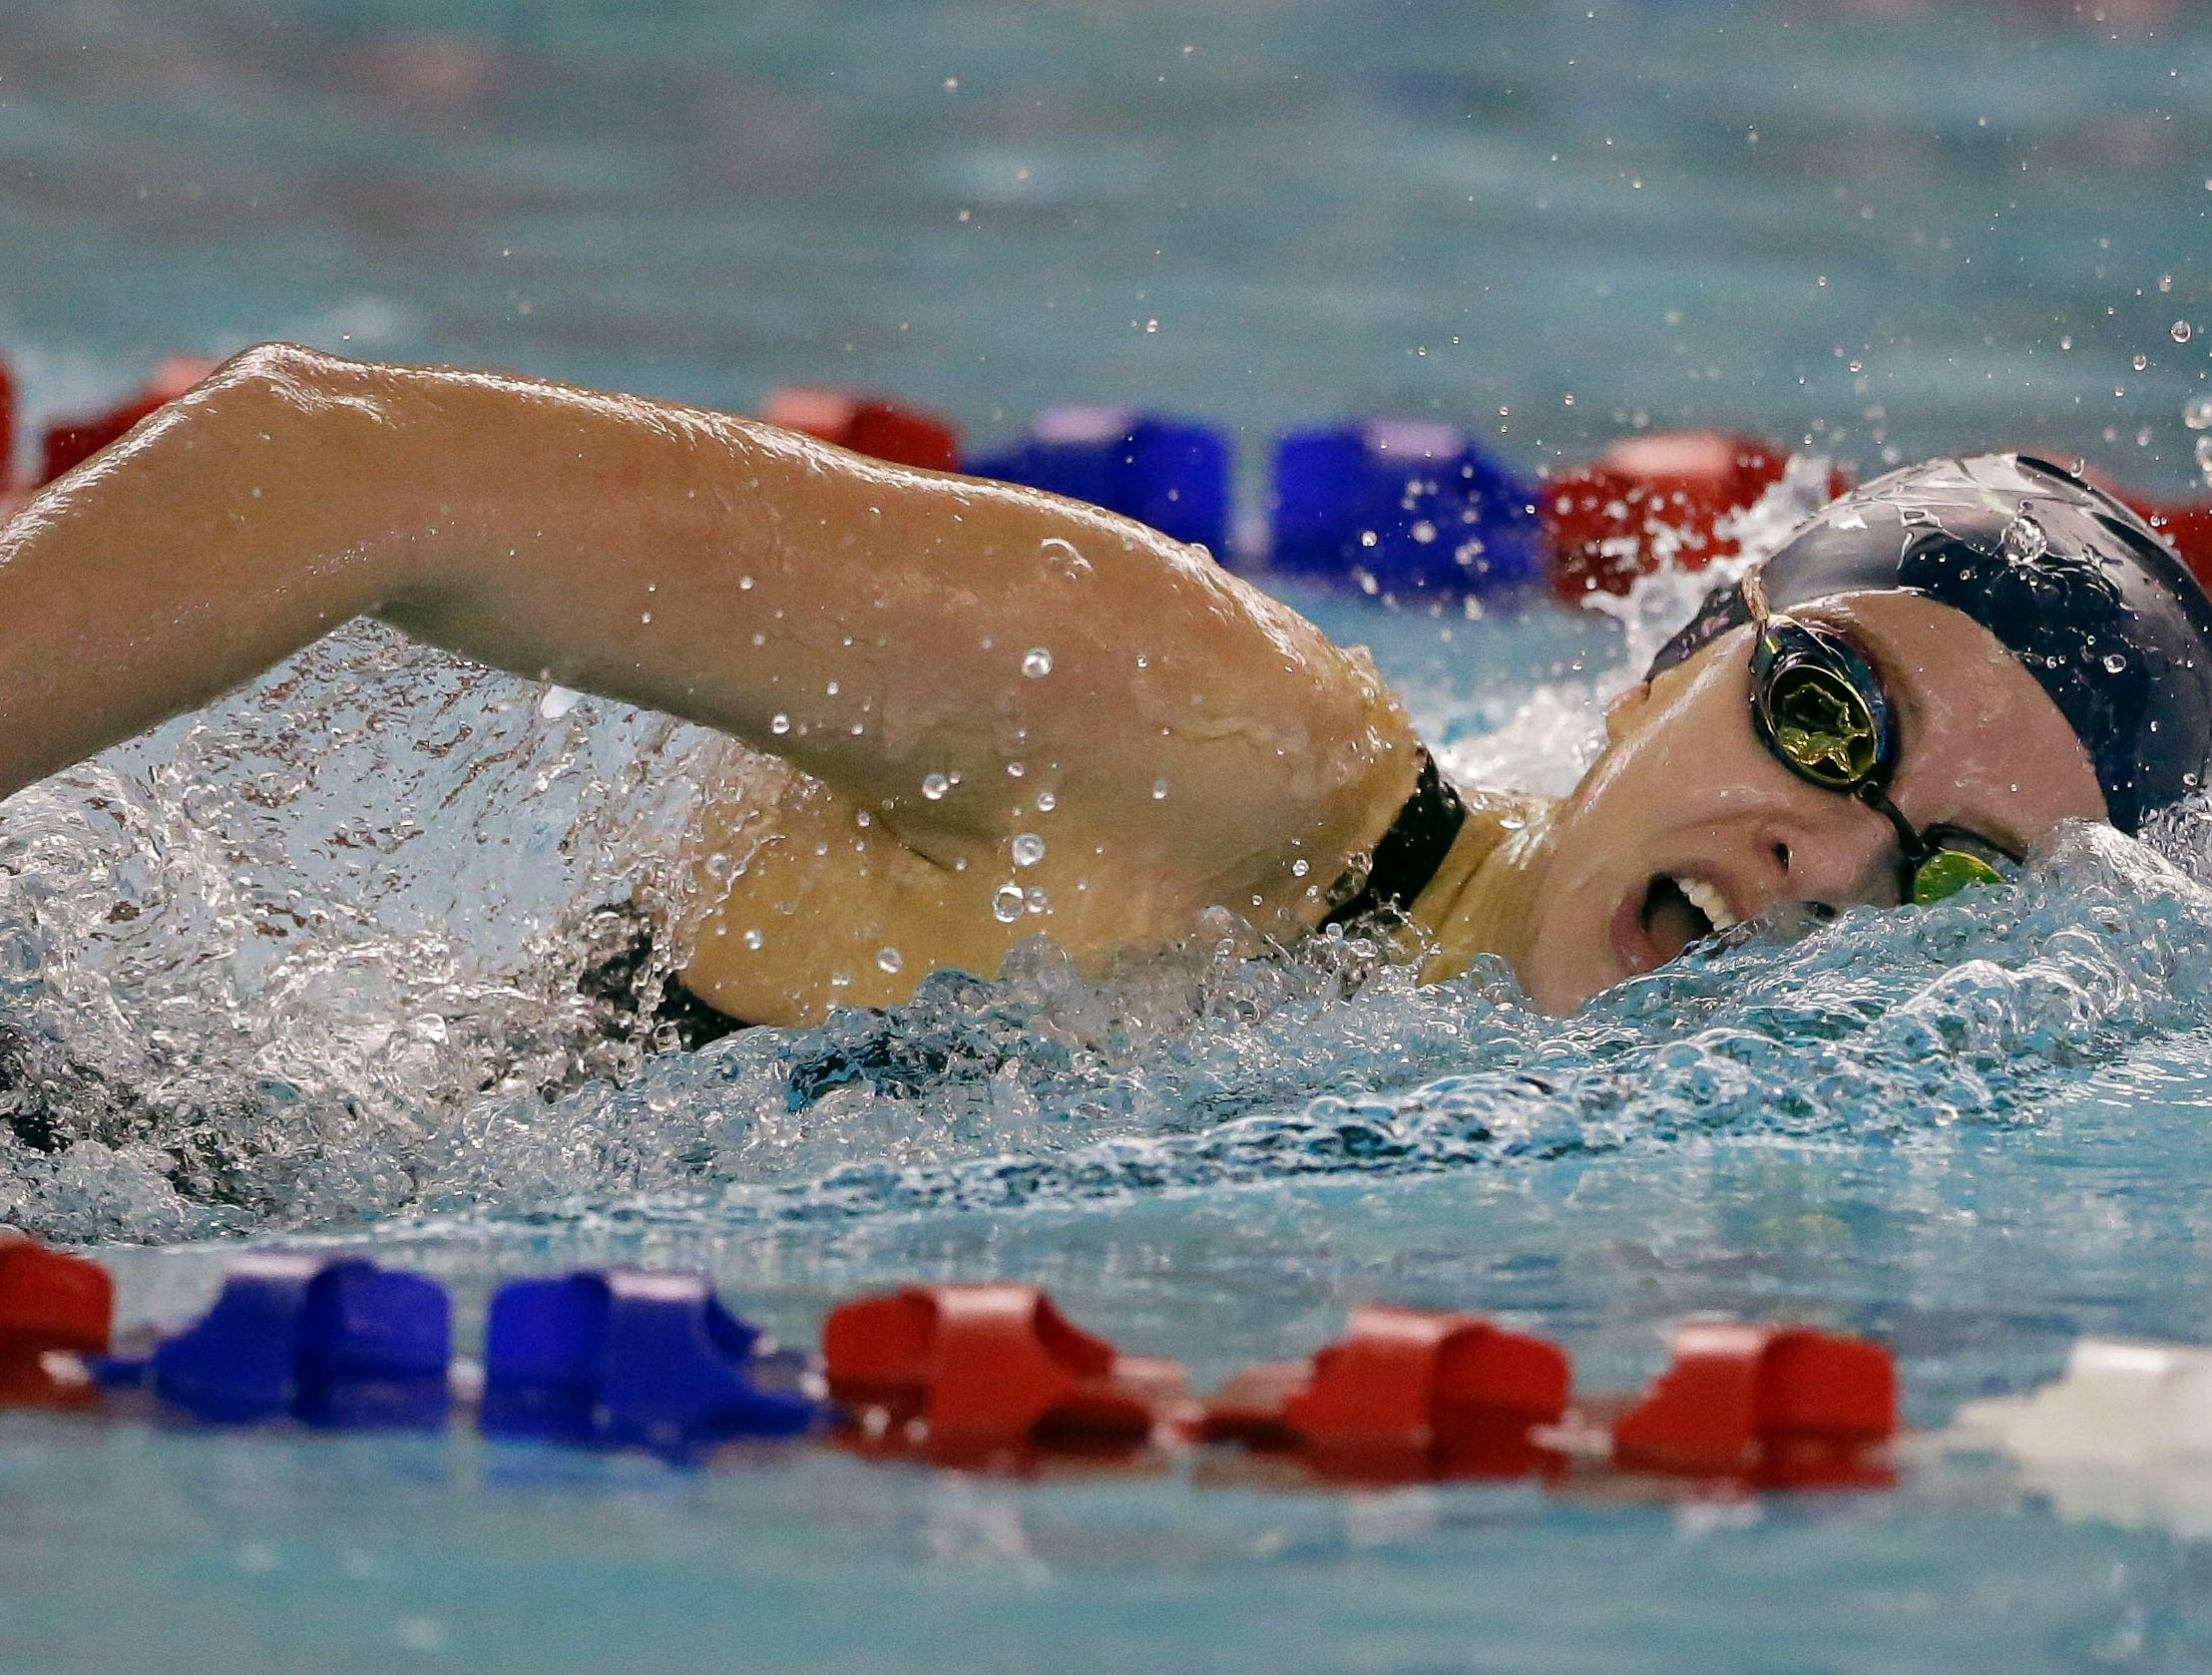 Emma Lasecki of Bay Port swims the 200 Yard IM as the WIAA Division 1 swimming sectional meet takes place Saturday, November 3, 2018, at Neenah High School in Neenah, Wis. Winners advanced to state.Ron Page/USA TODAY NETWORK-Wisconsin